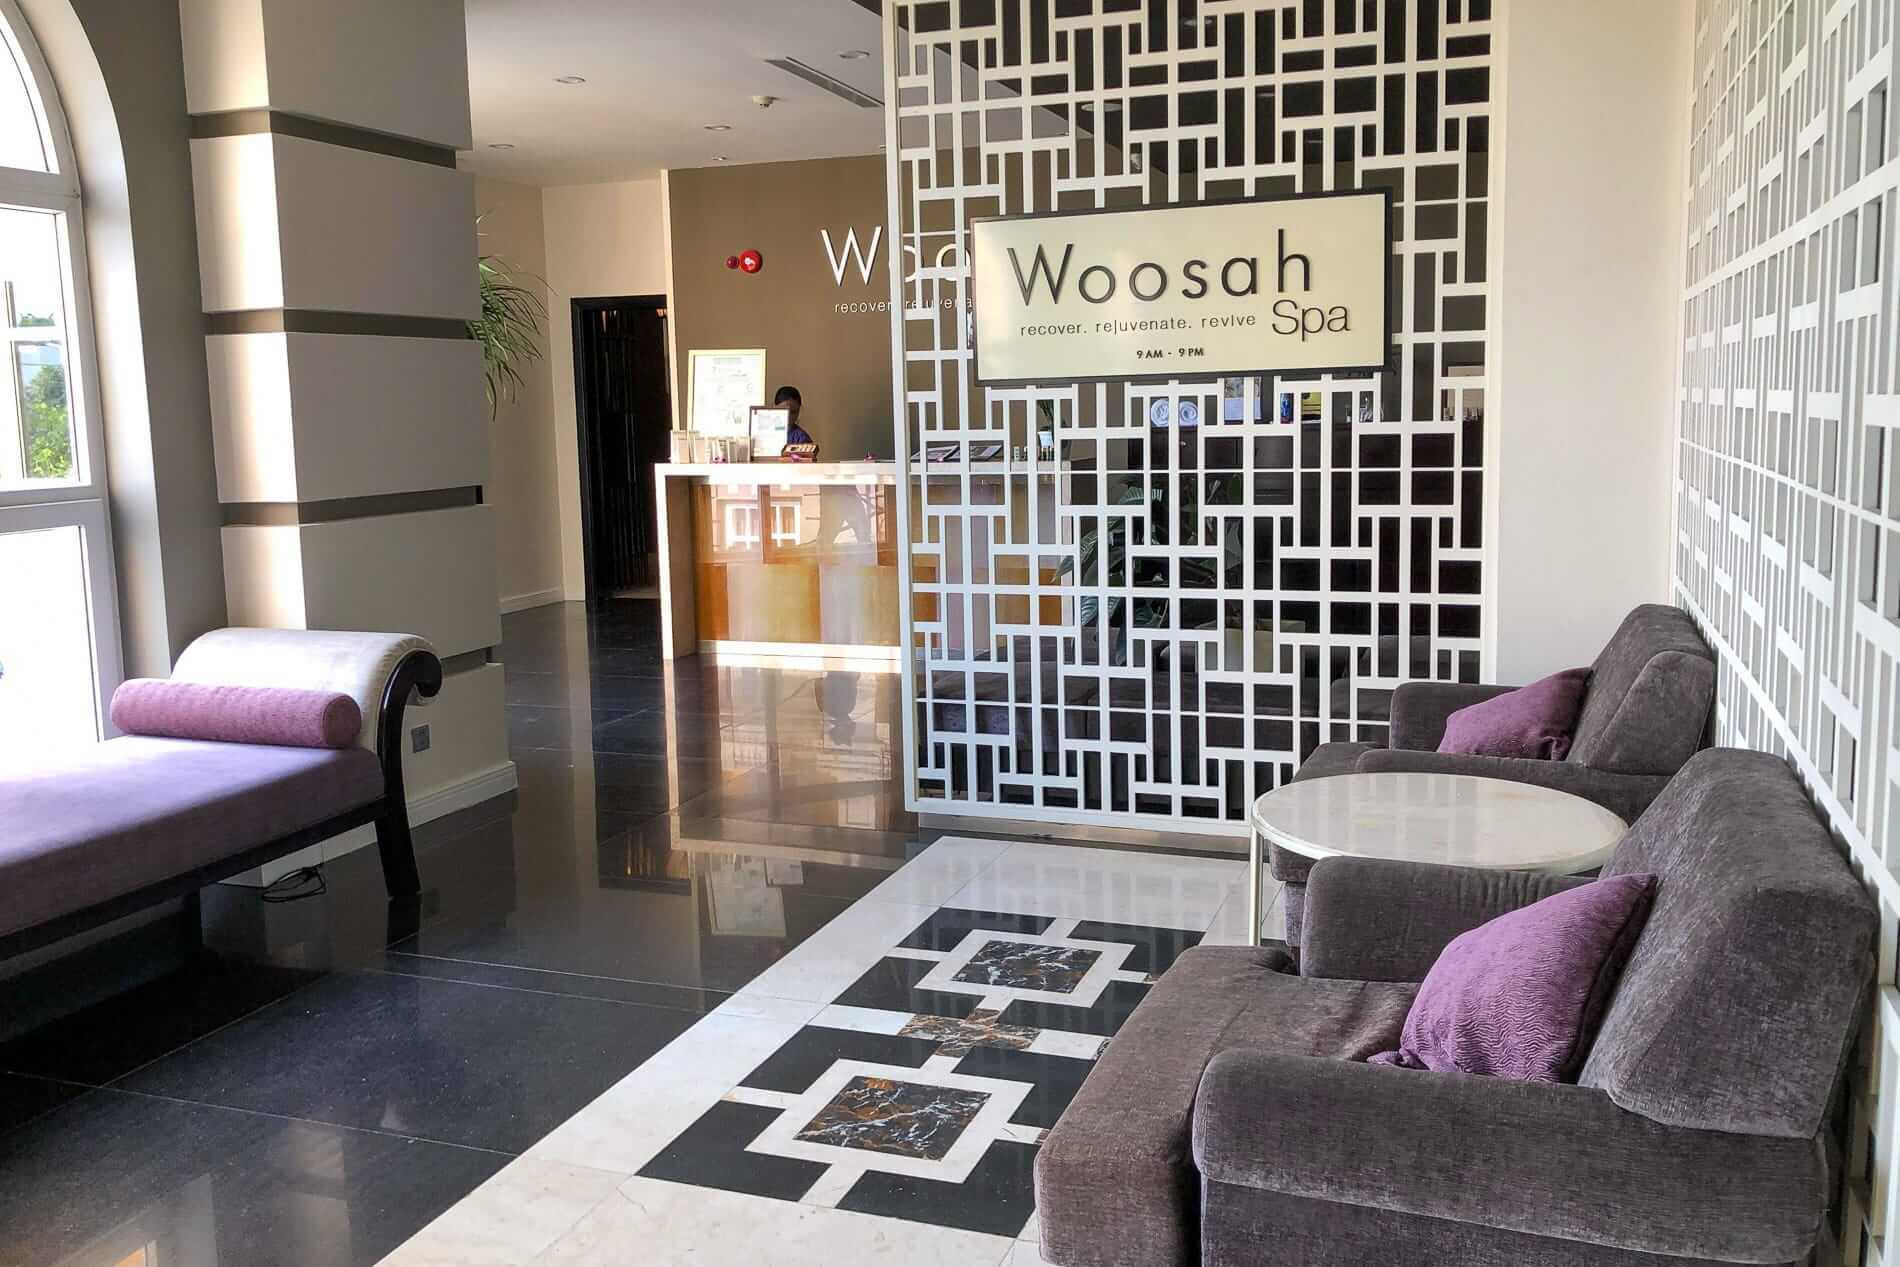 cozy reception hall at Woosah Spa in Hoi An